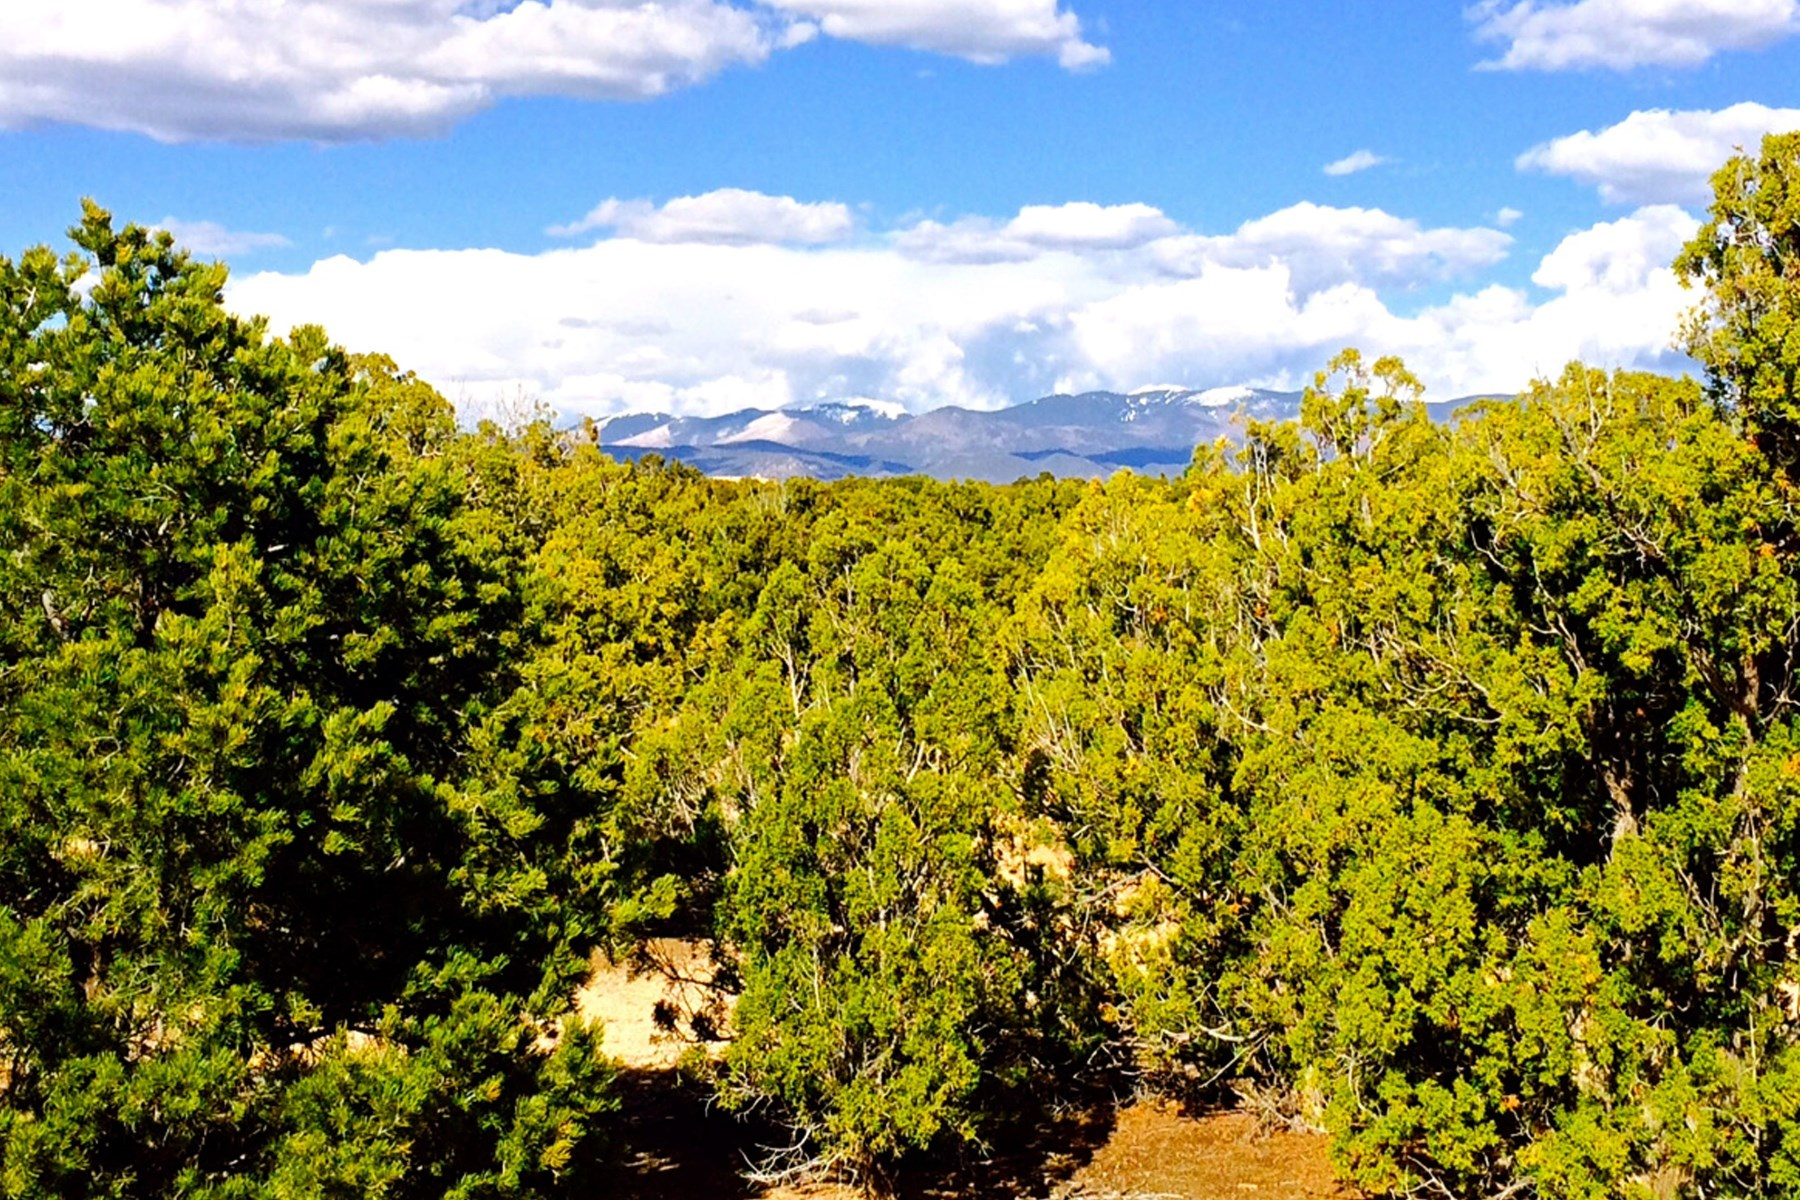 Land for Sale at 2 Silver Mesa Plaza, Lot 12 2 Silver Mesa Plaza, Lot 12 Santa Fe, New Mexico 87506 United States